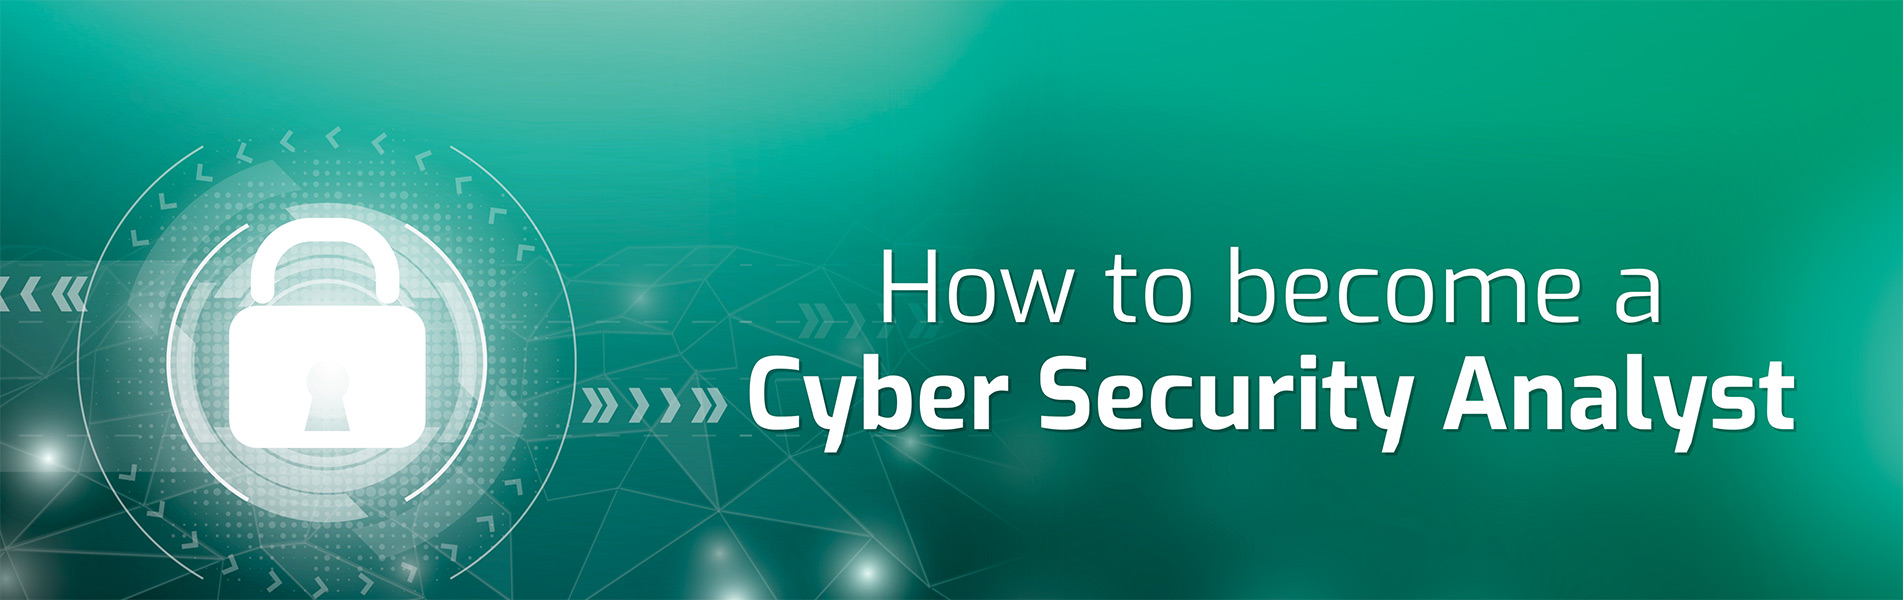 How-to-become-a-Cybersecurity-Analyst